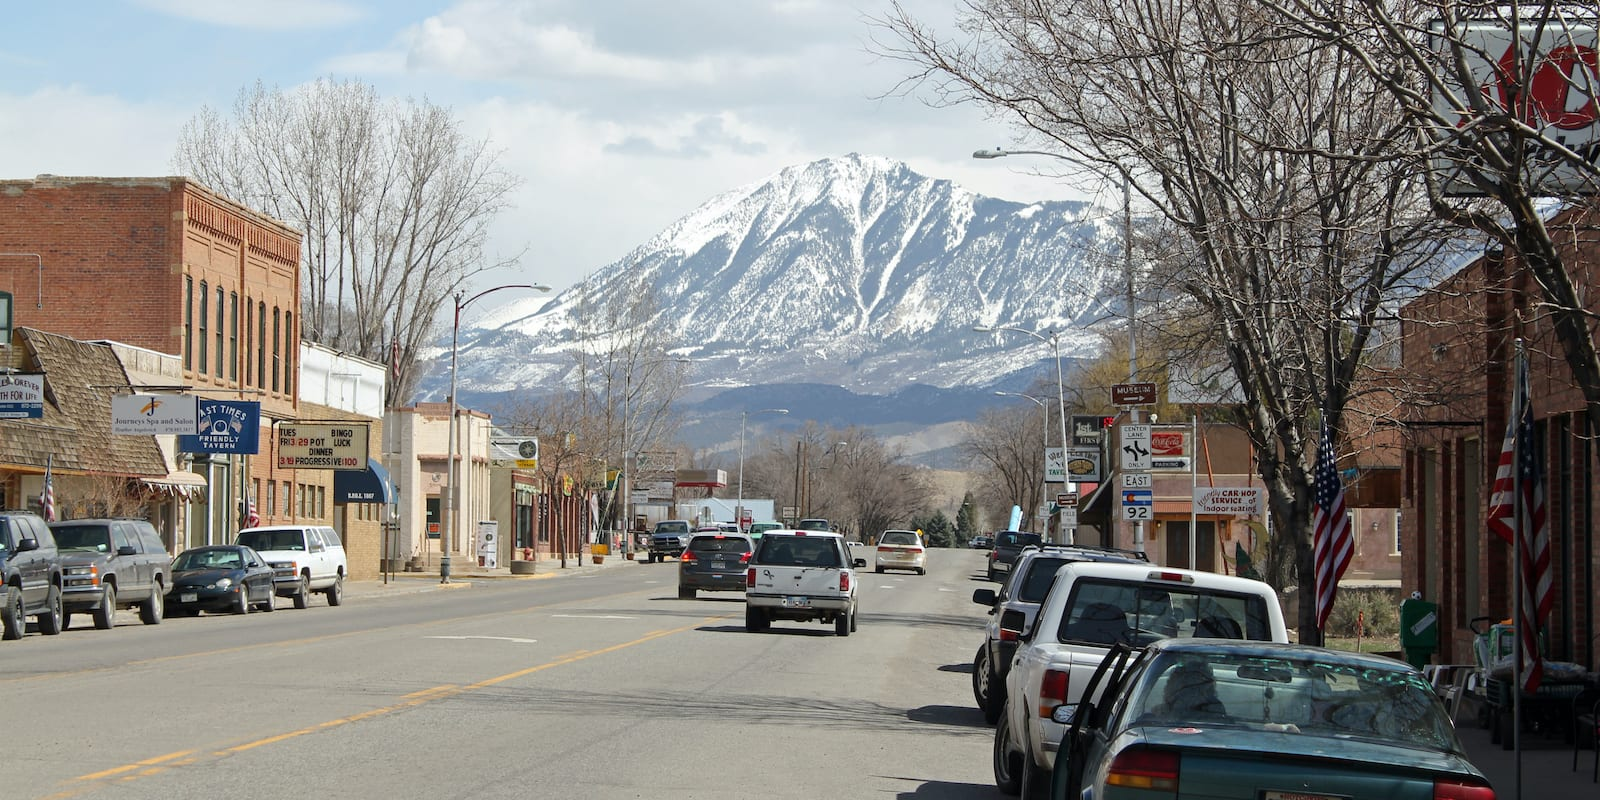 East Bridge Street Hotchkiss Colorado Mt. Lamborn